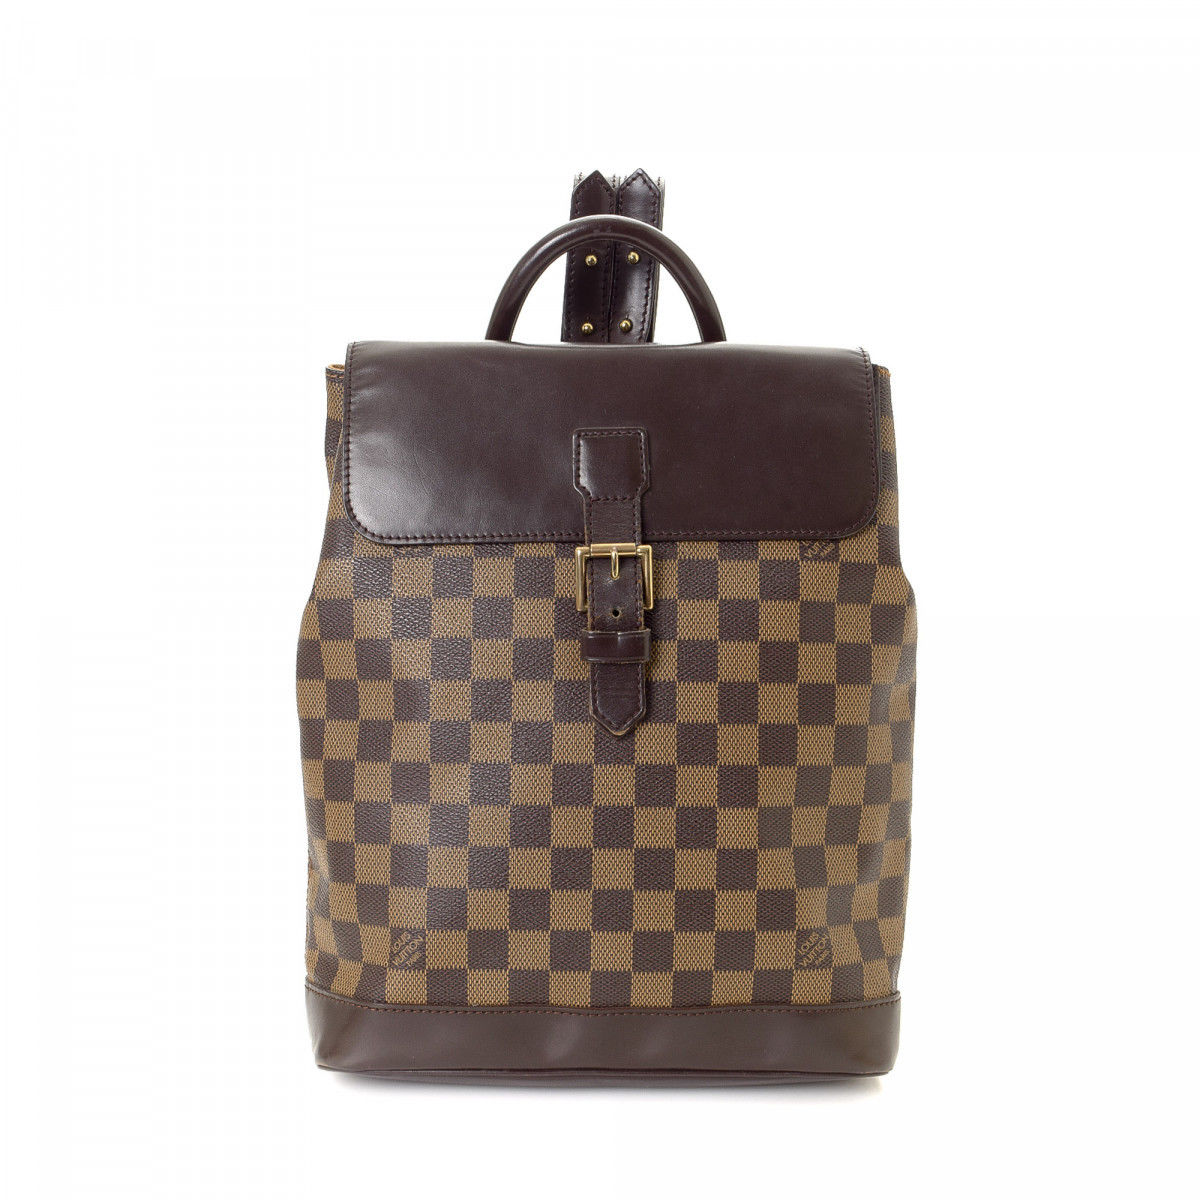 vintage louis vuitton damier ebene soho backpack by